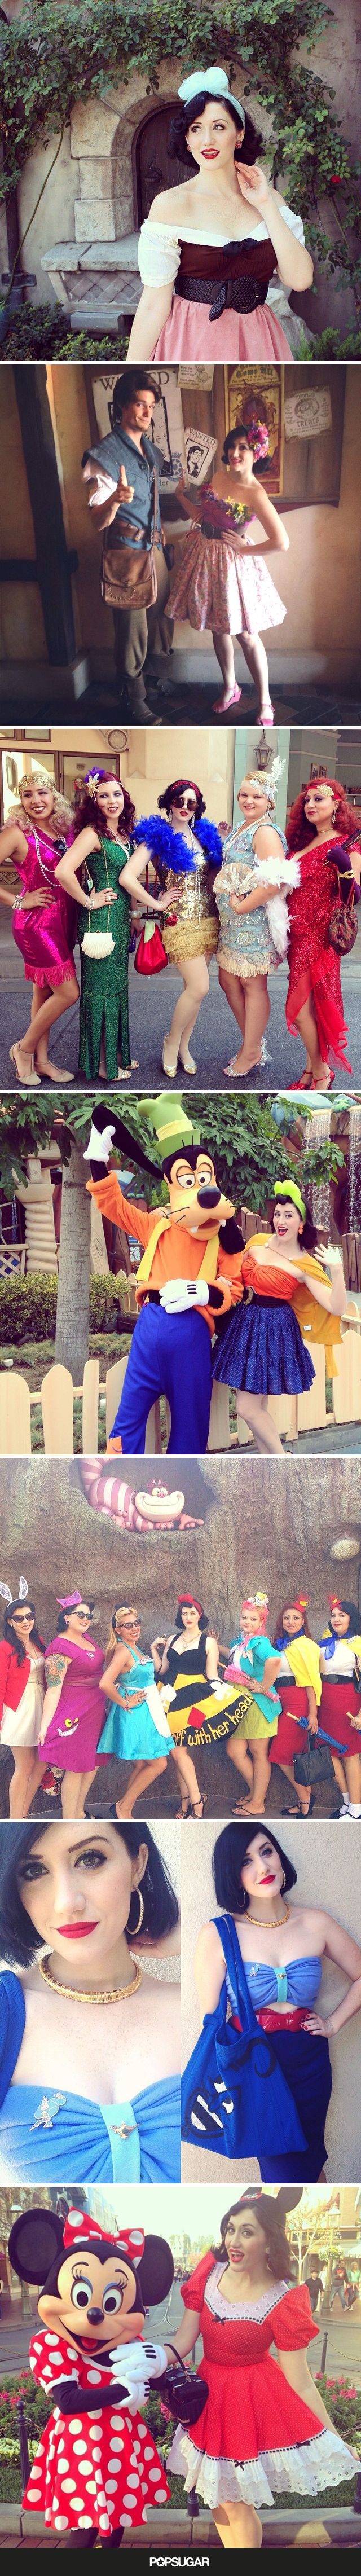 An Undercover Disney Princess Shares the Secrets of Disneybounding